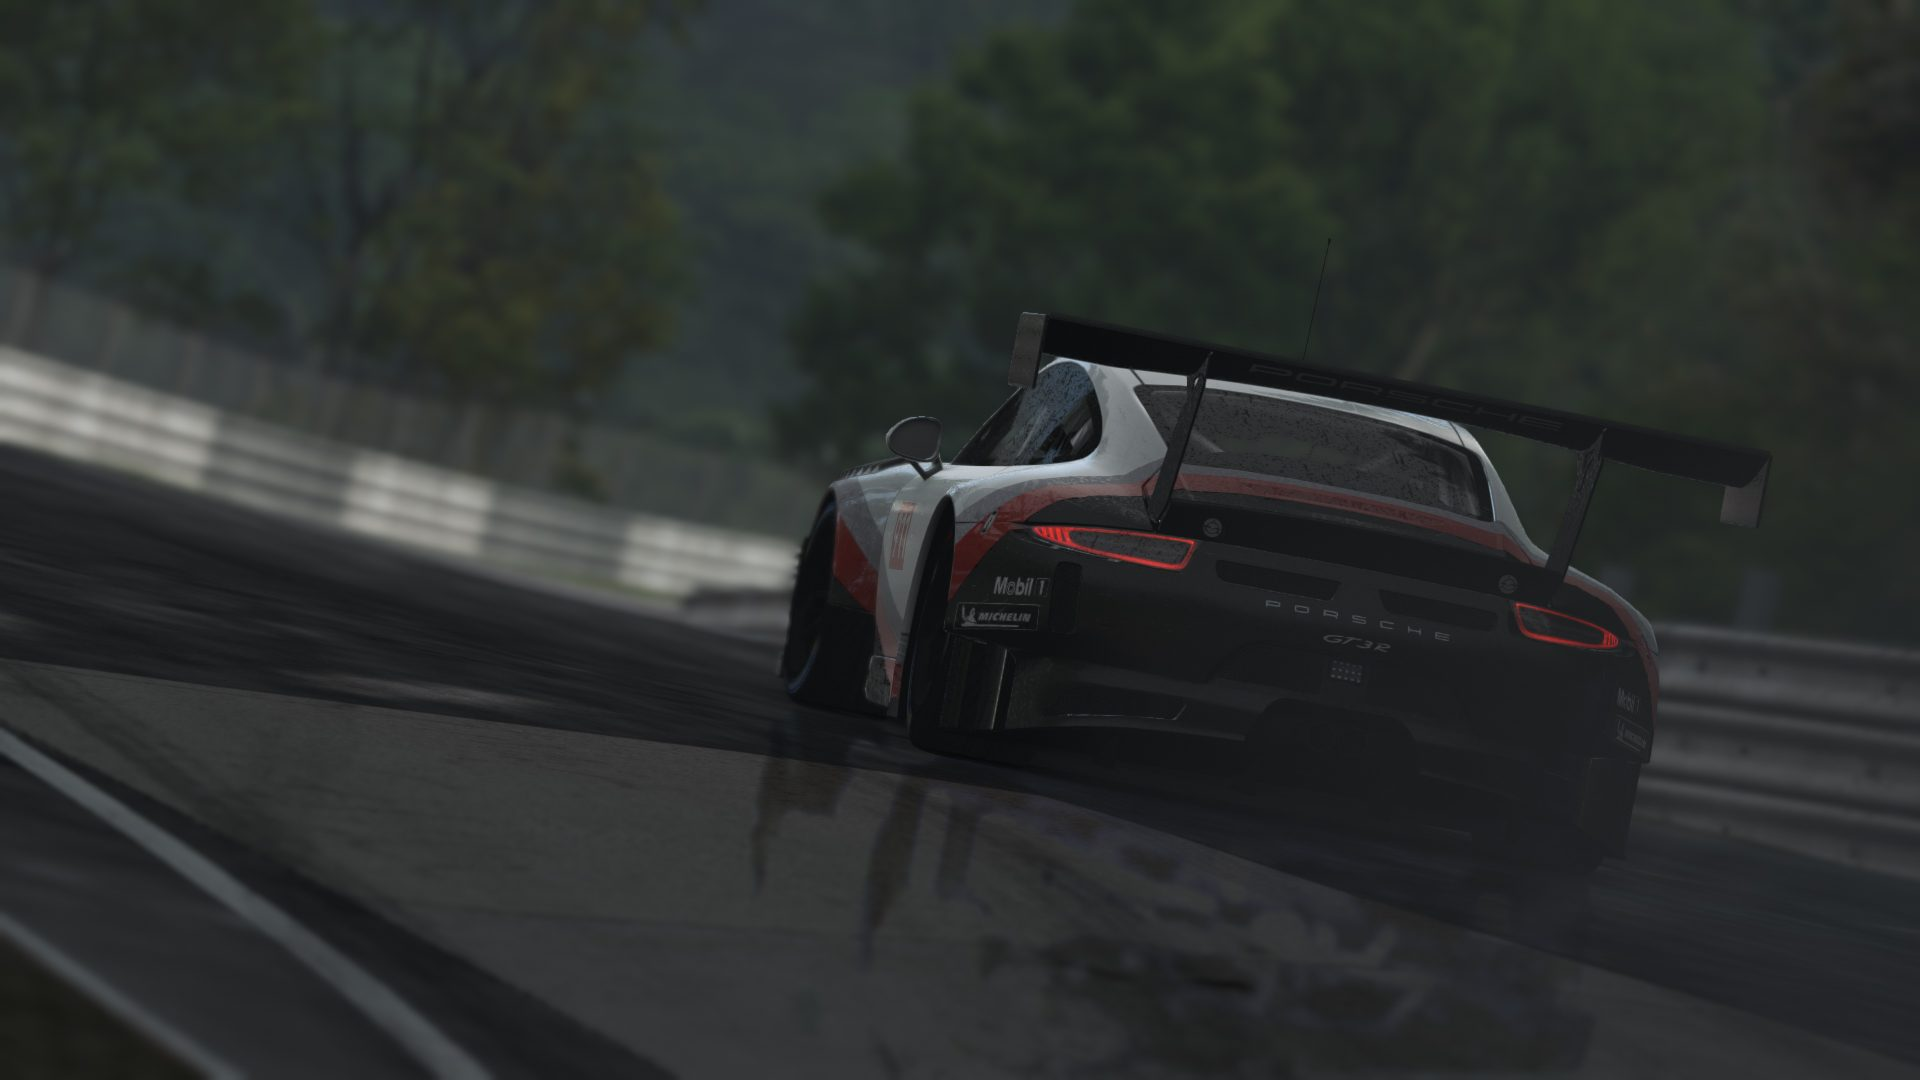 roadmap_september_nurburgring_02-1920x10